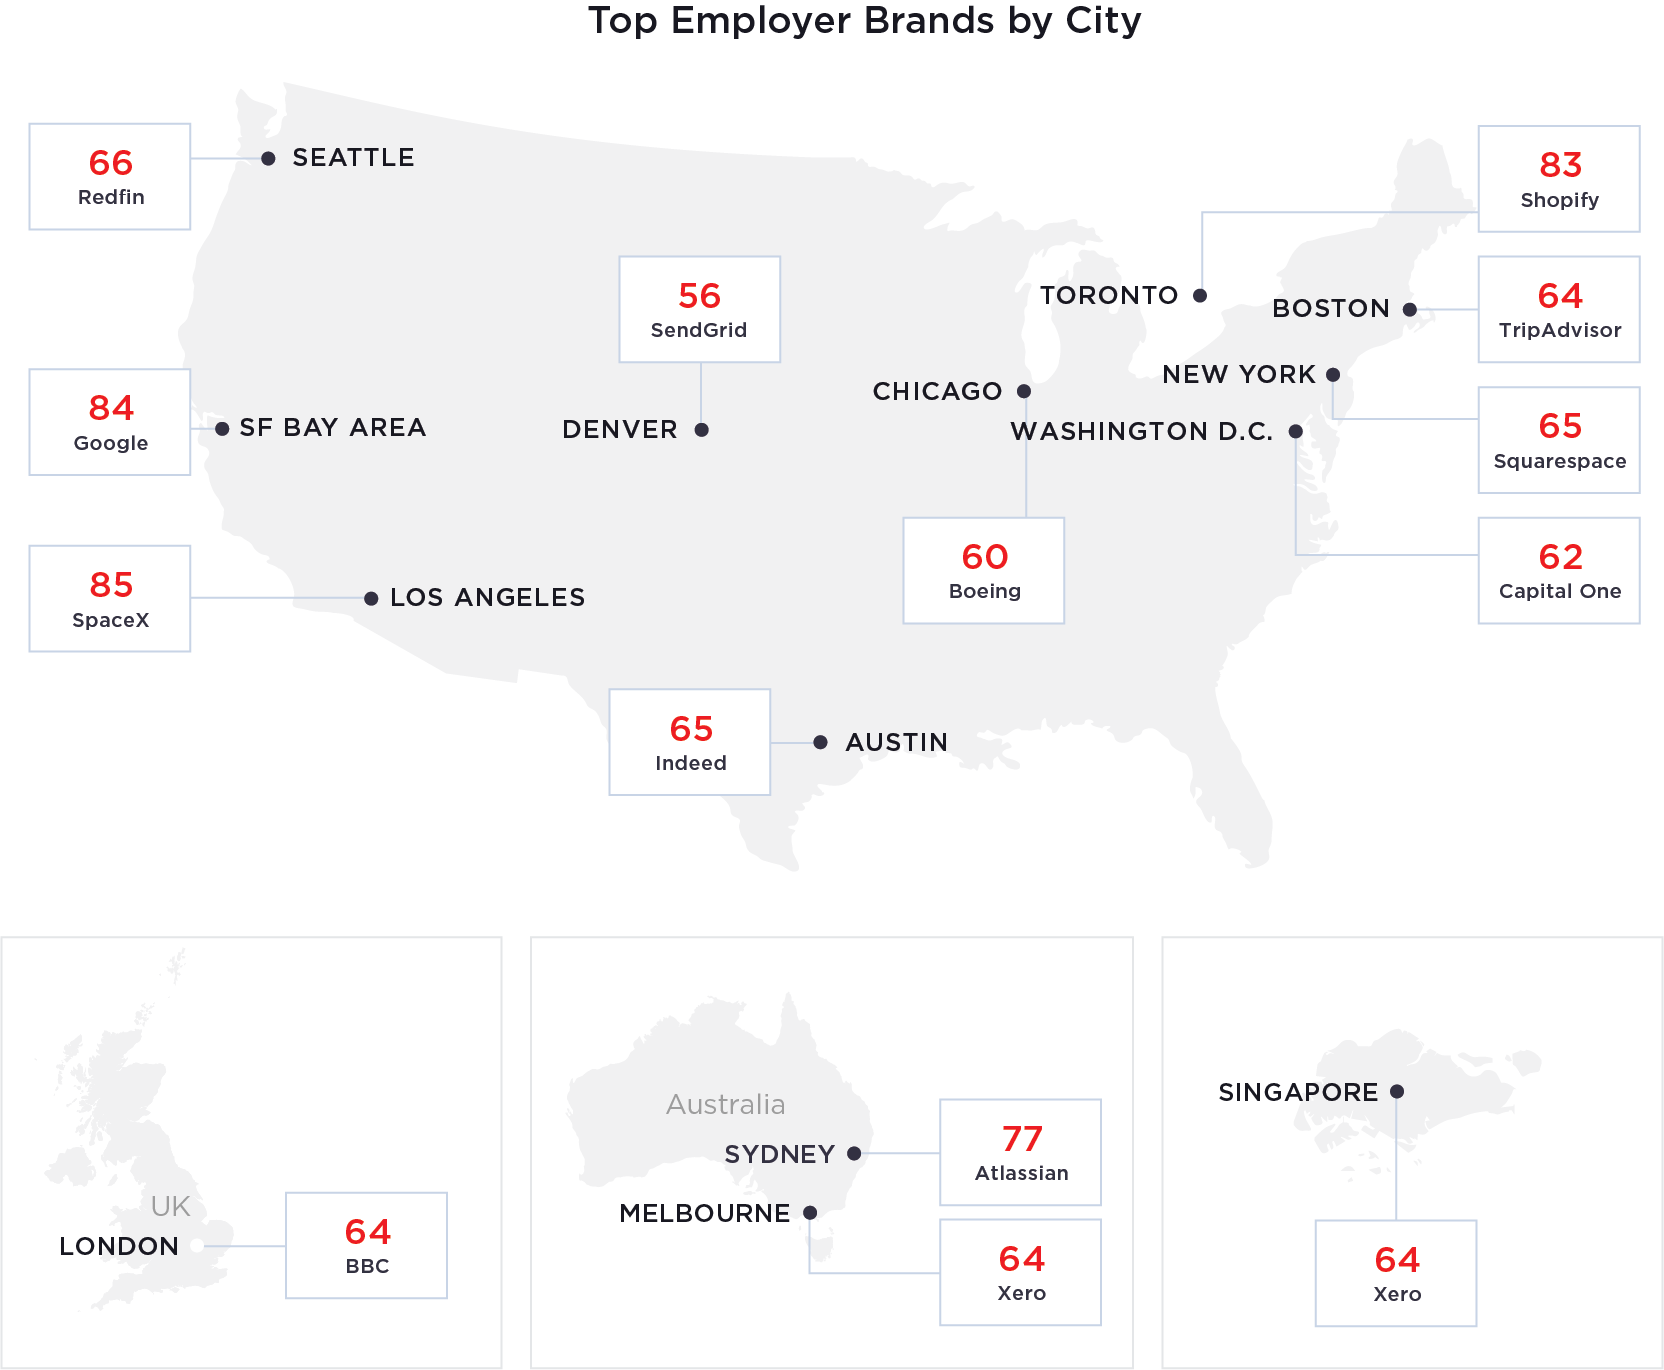 Visit SpaceX, Google and Shopify top the list of places ...